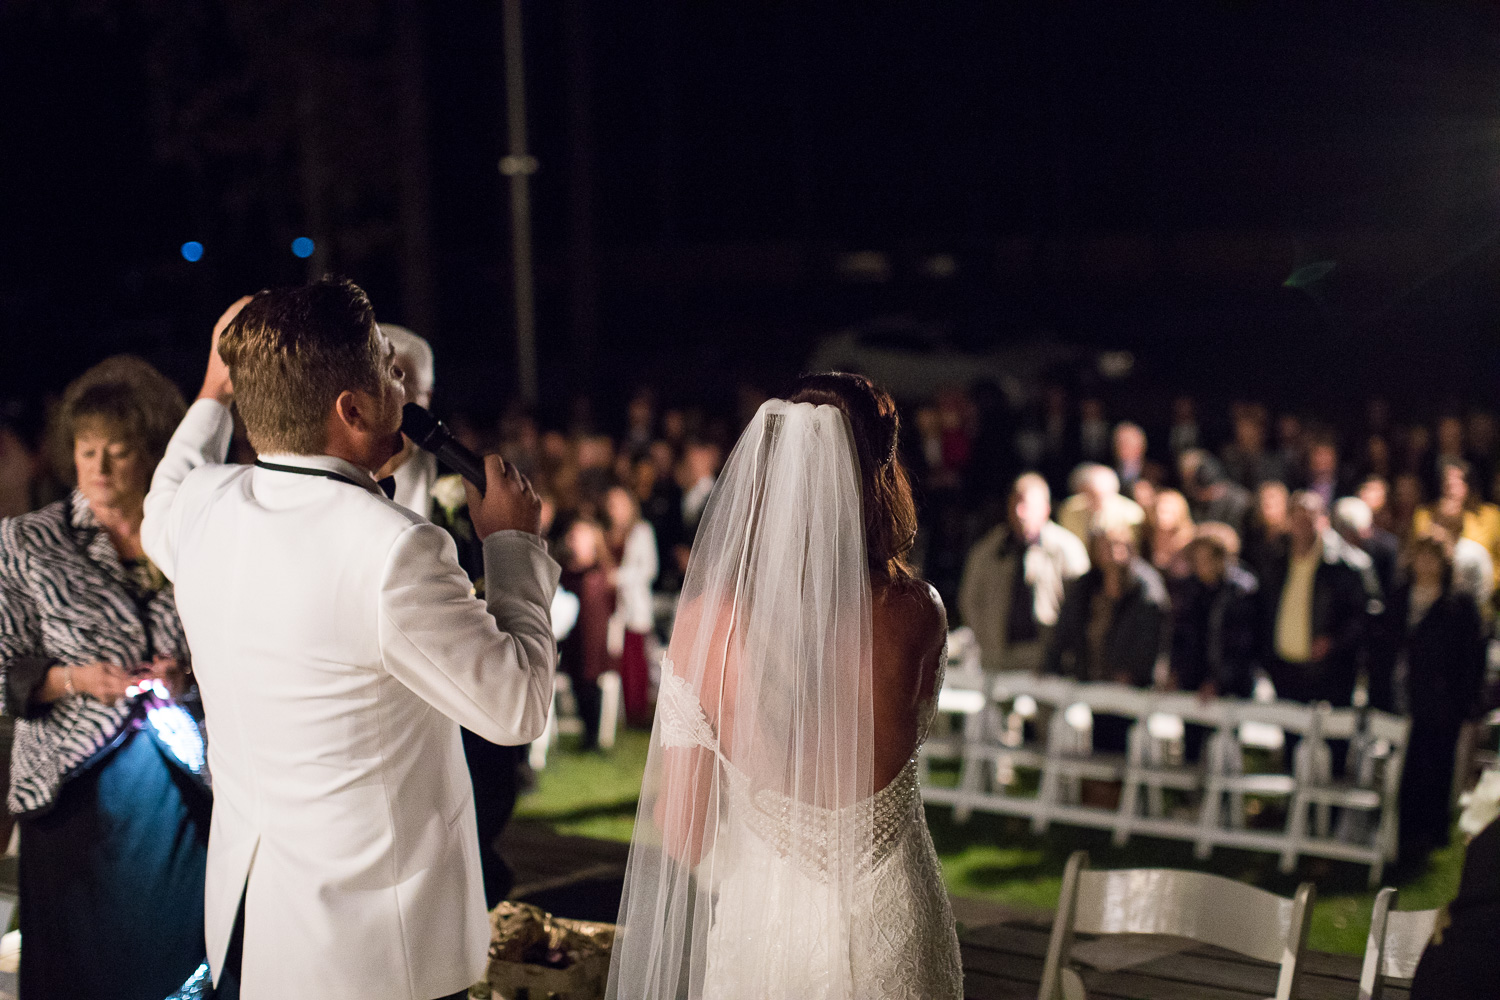 Michael and Juliana led their guests in worship as part of their ceremony! It was such a beautiful moment!